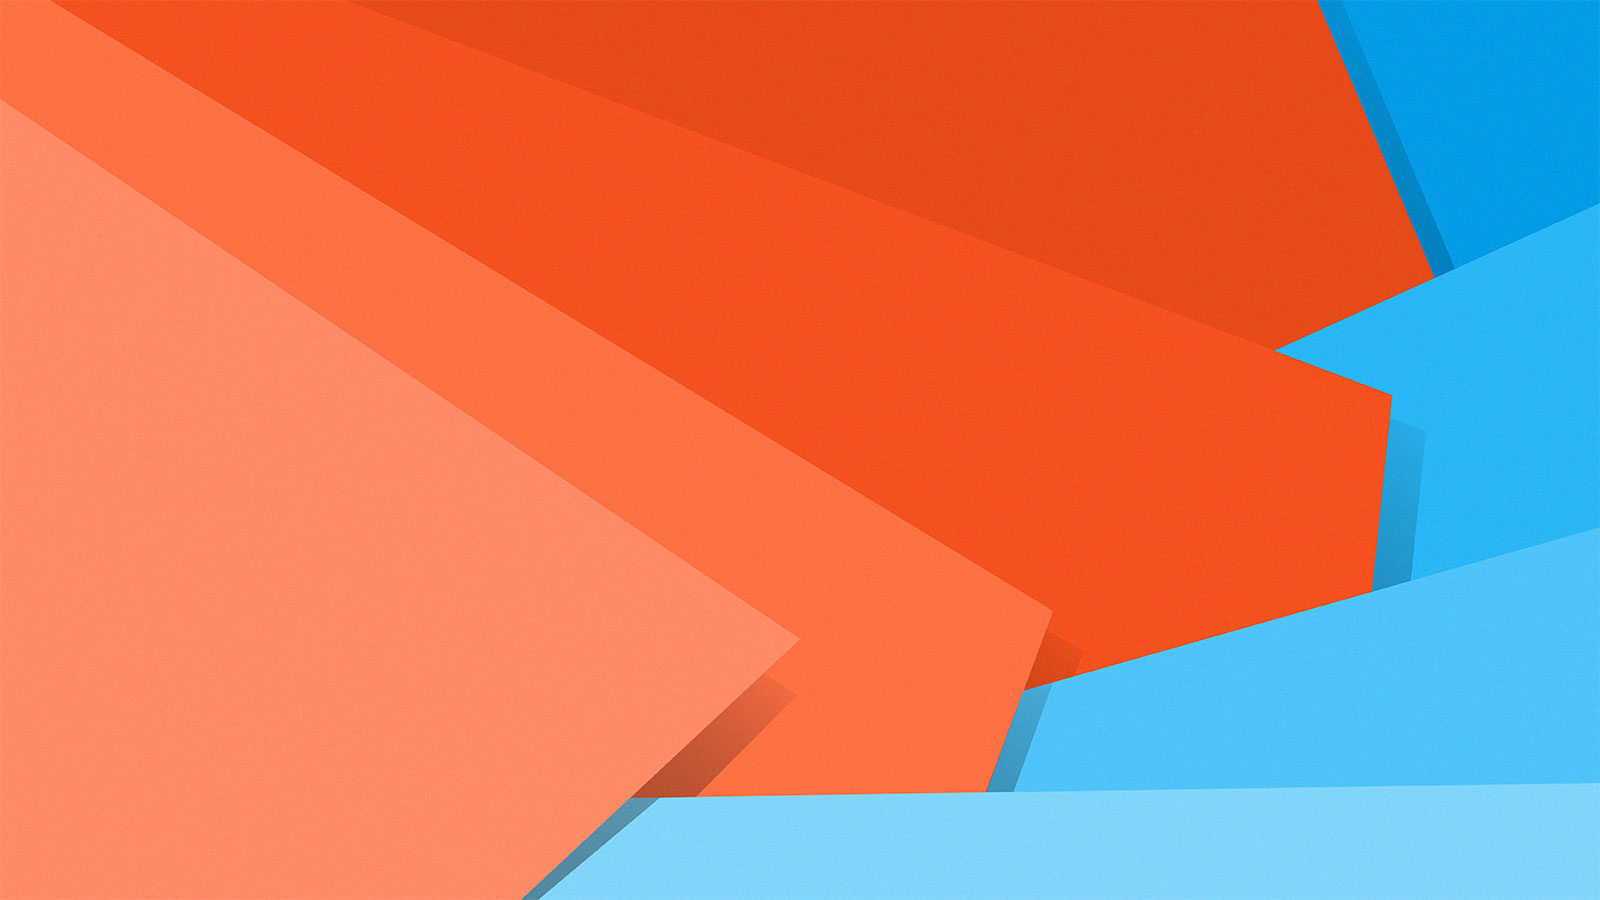 Brand New Set Of 40+ Material Design Backgrounds